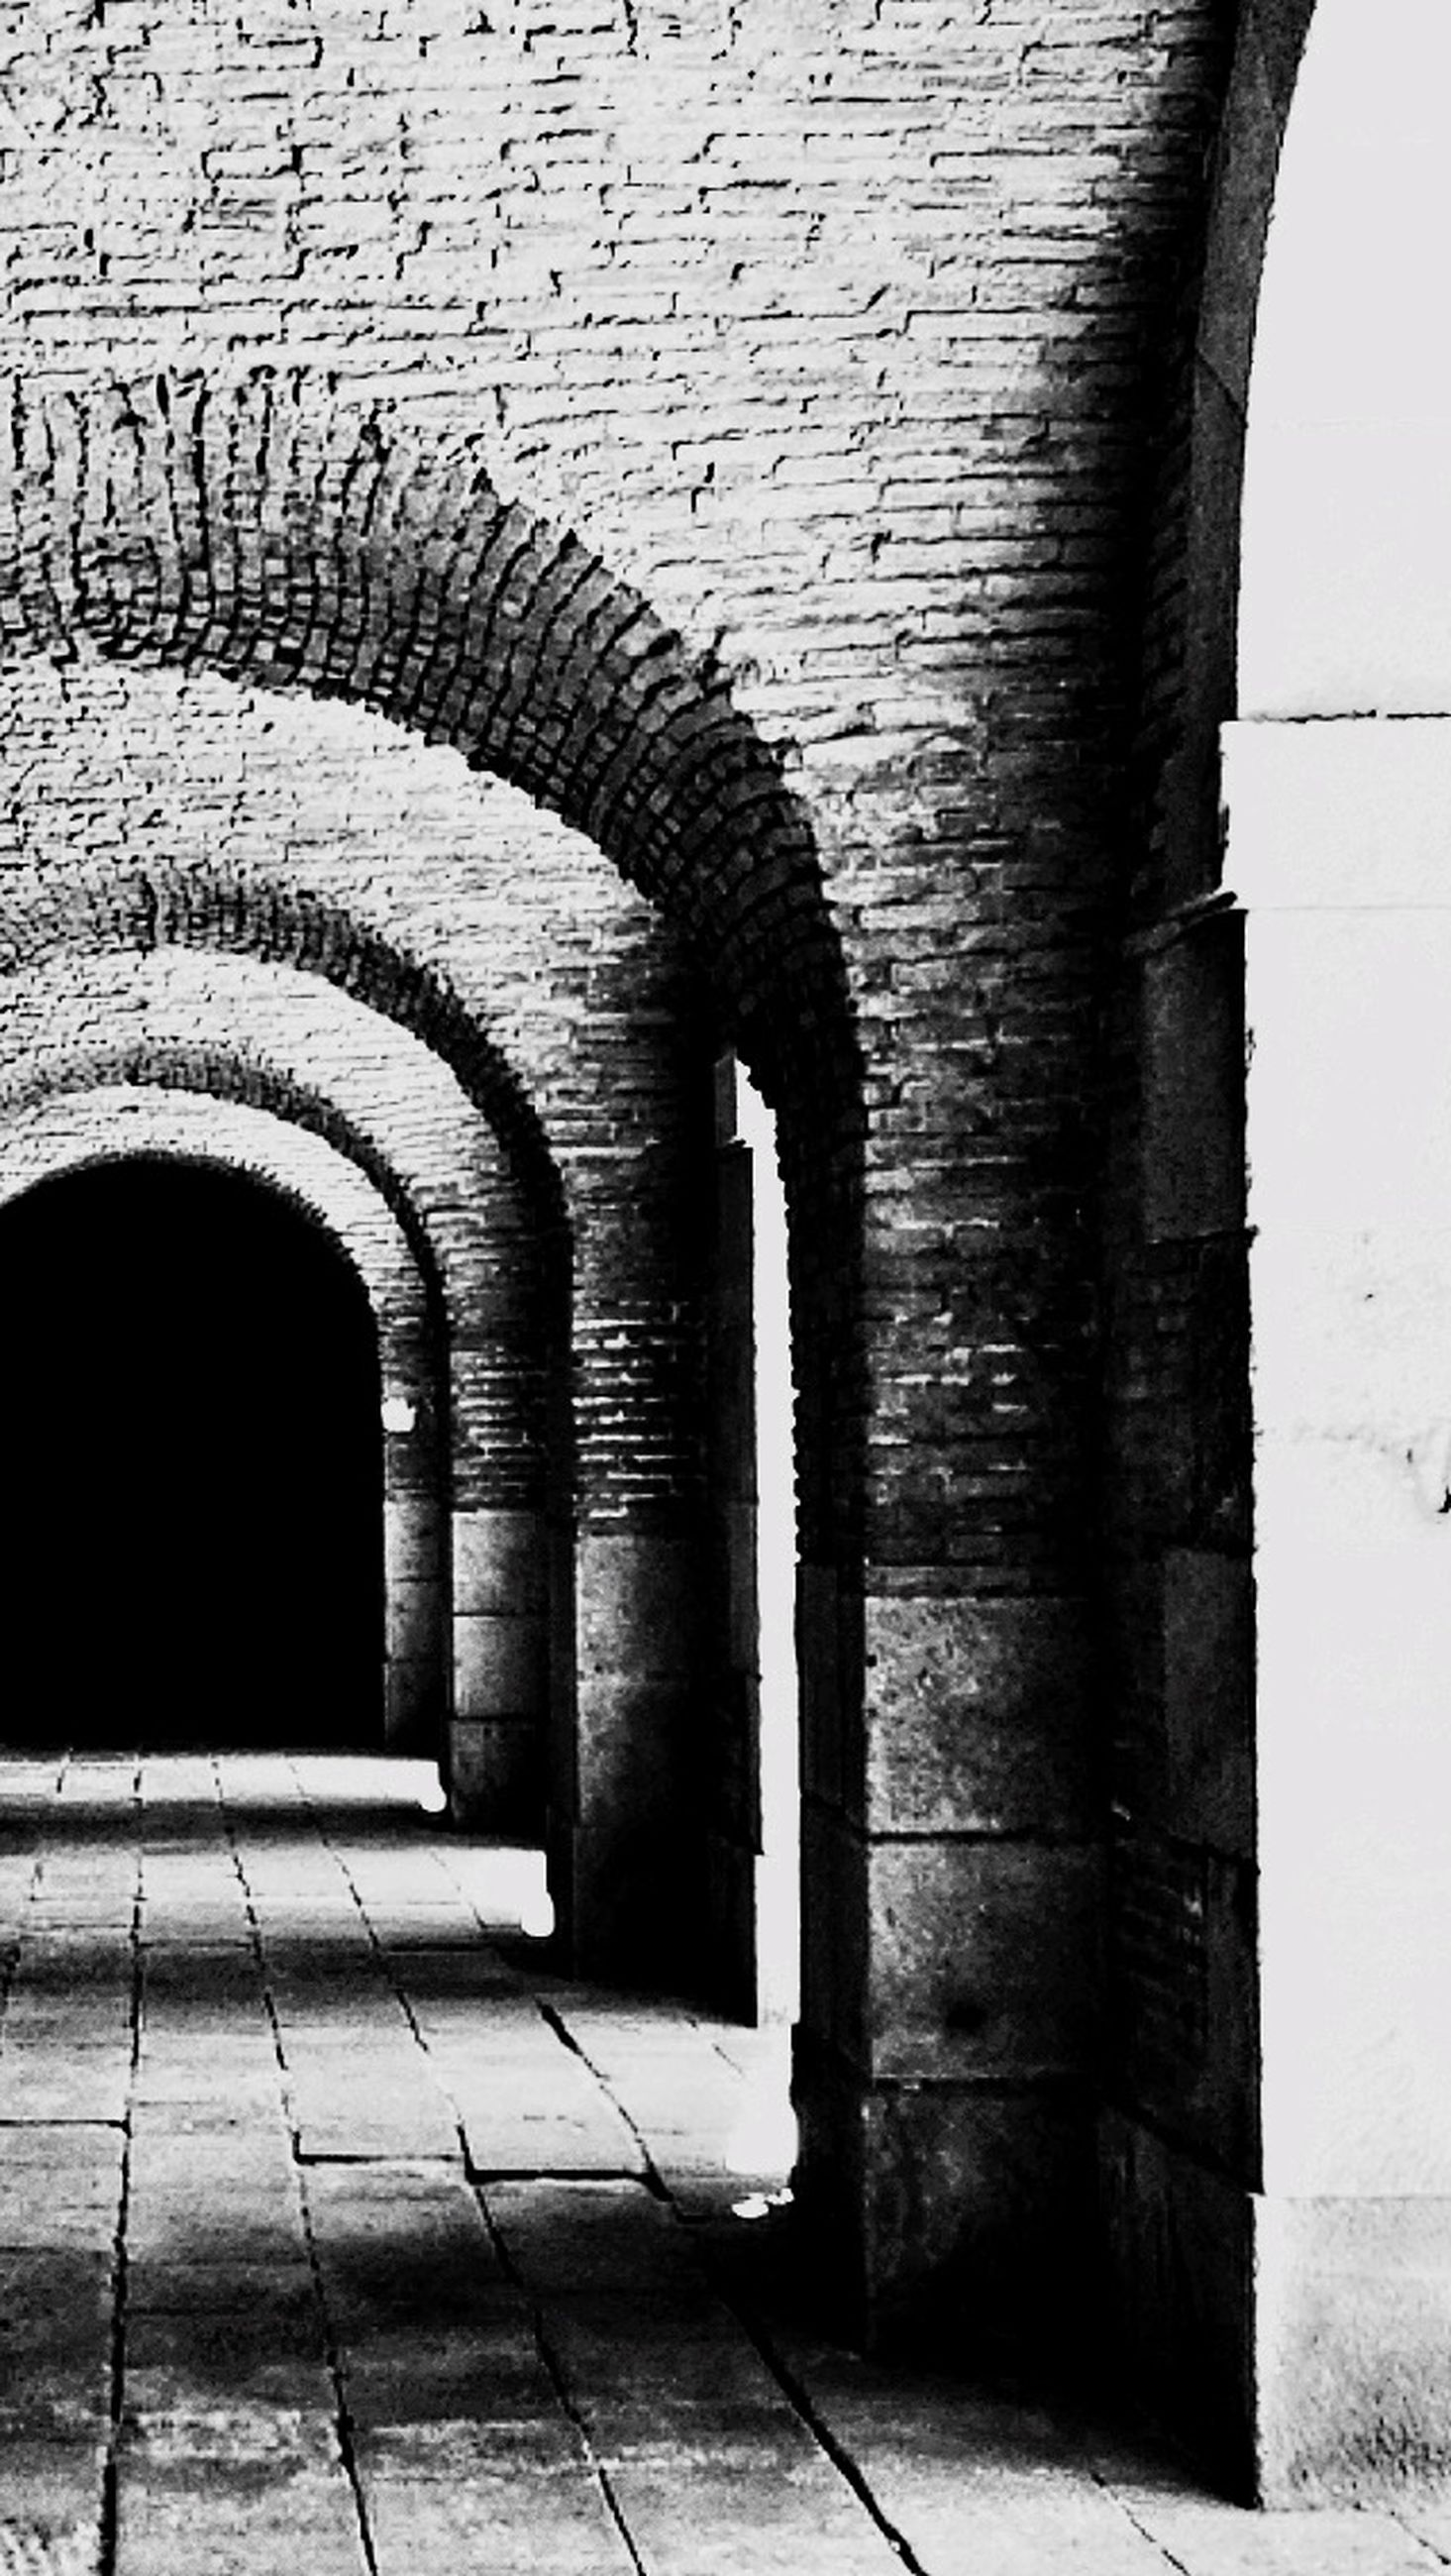 architecture, built structure, arch, building exterior, old, archway, brick wall, wall - building feature, building, entrance, history, door, stone wall, arched, wall, day, indoors, corridor, historic, cobblestone